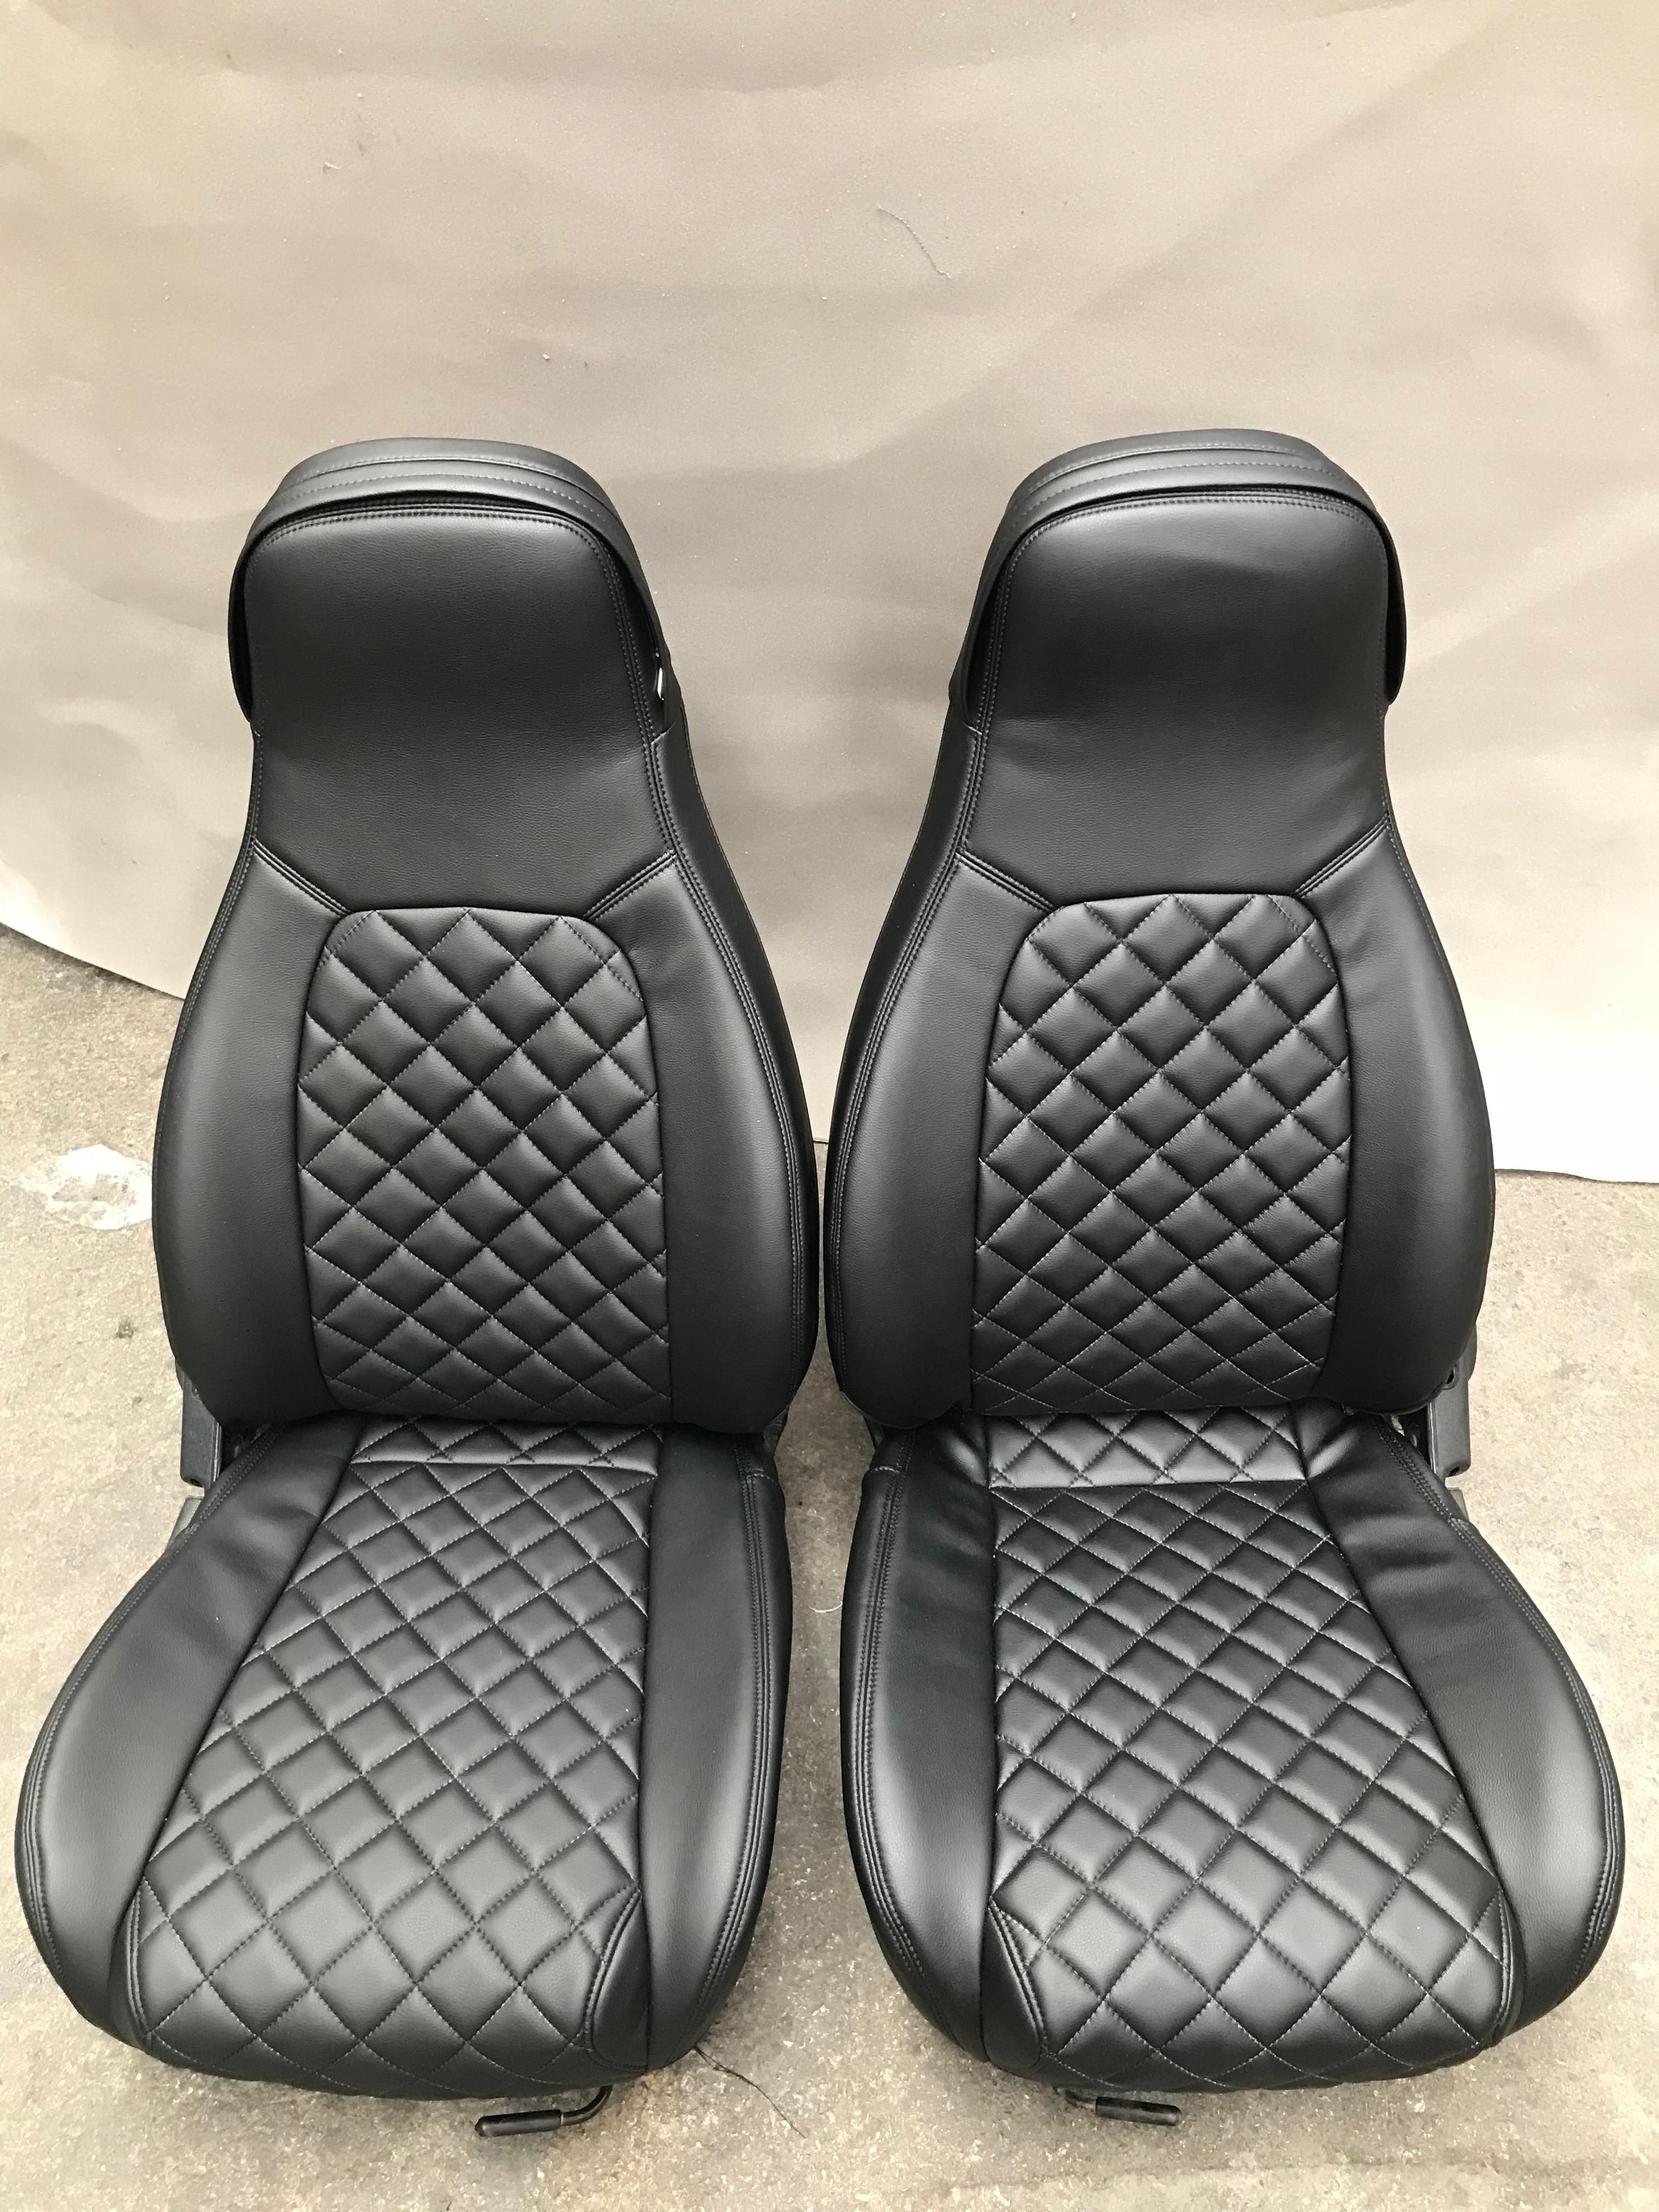 Quilted Seat Covers